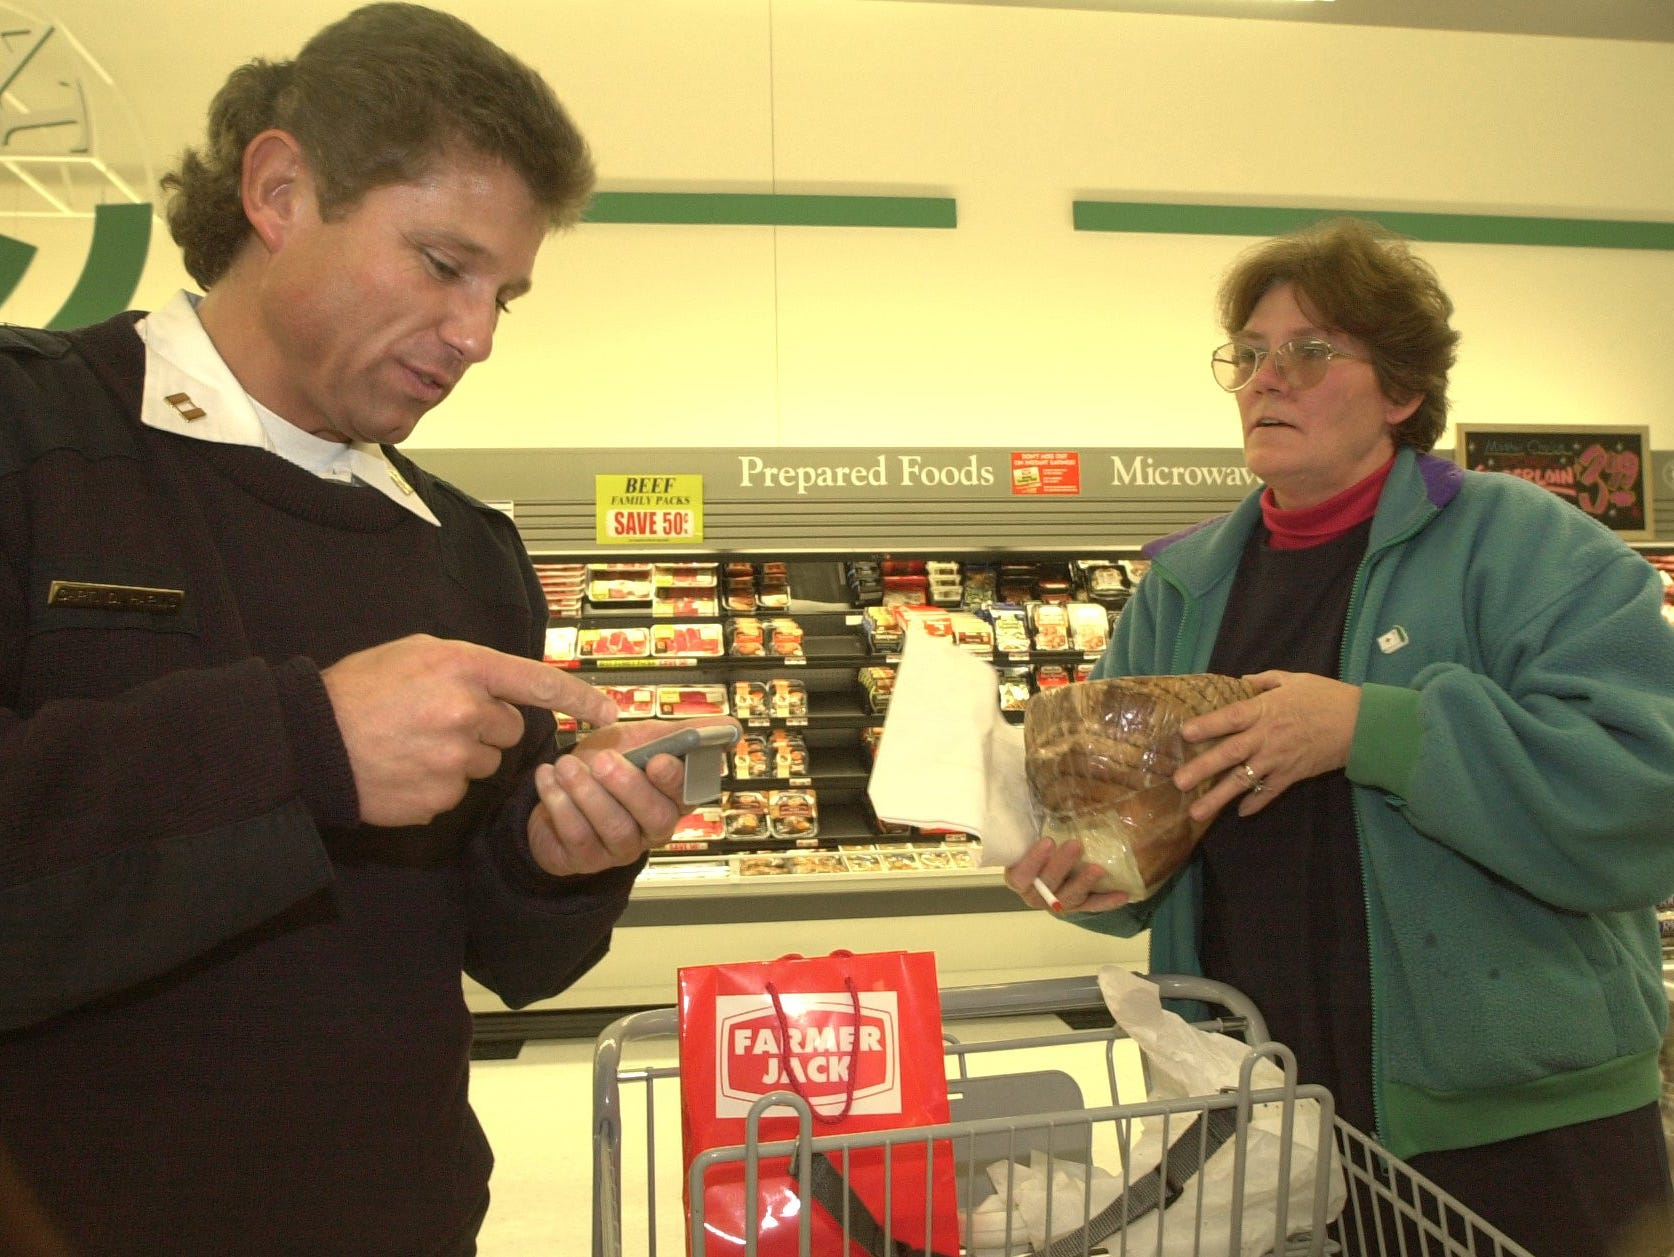 Delta Fire Captain Duane Haring adds the price of a ham to his grocery total as he and Linda Davis shop for St. Vincent Home for Children, Oct. 16, 2001, at the new Farmer Jack in Delta Township.  This was a charity shopping spree in which shopper for local charities were given fifteen minutes to load up there carts with food up to $600.